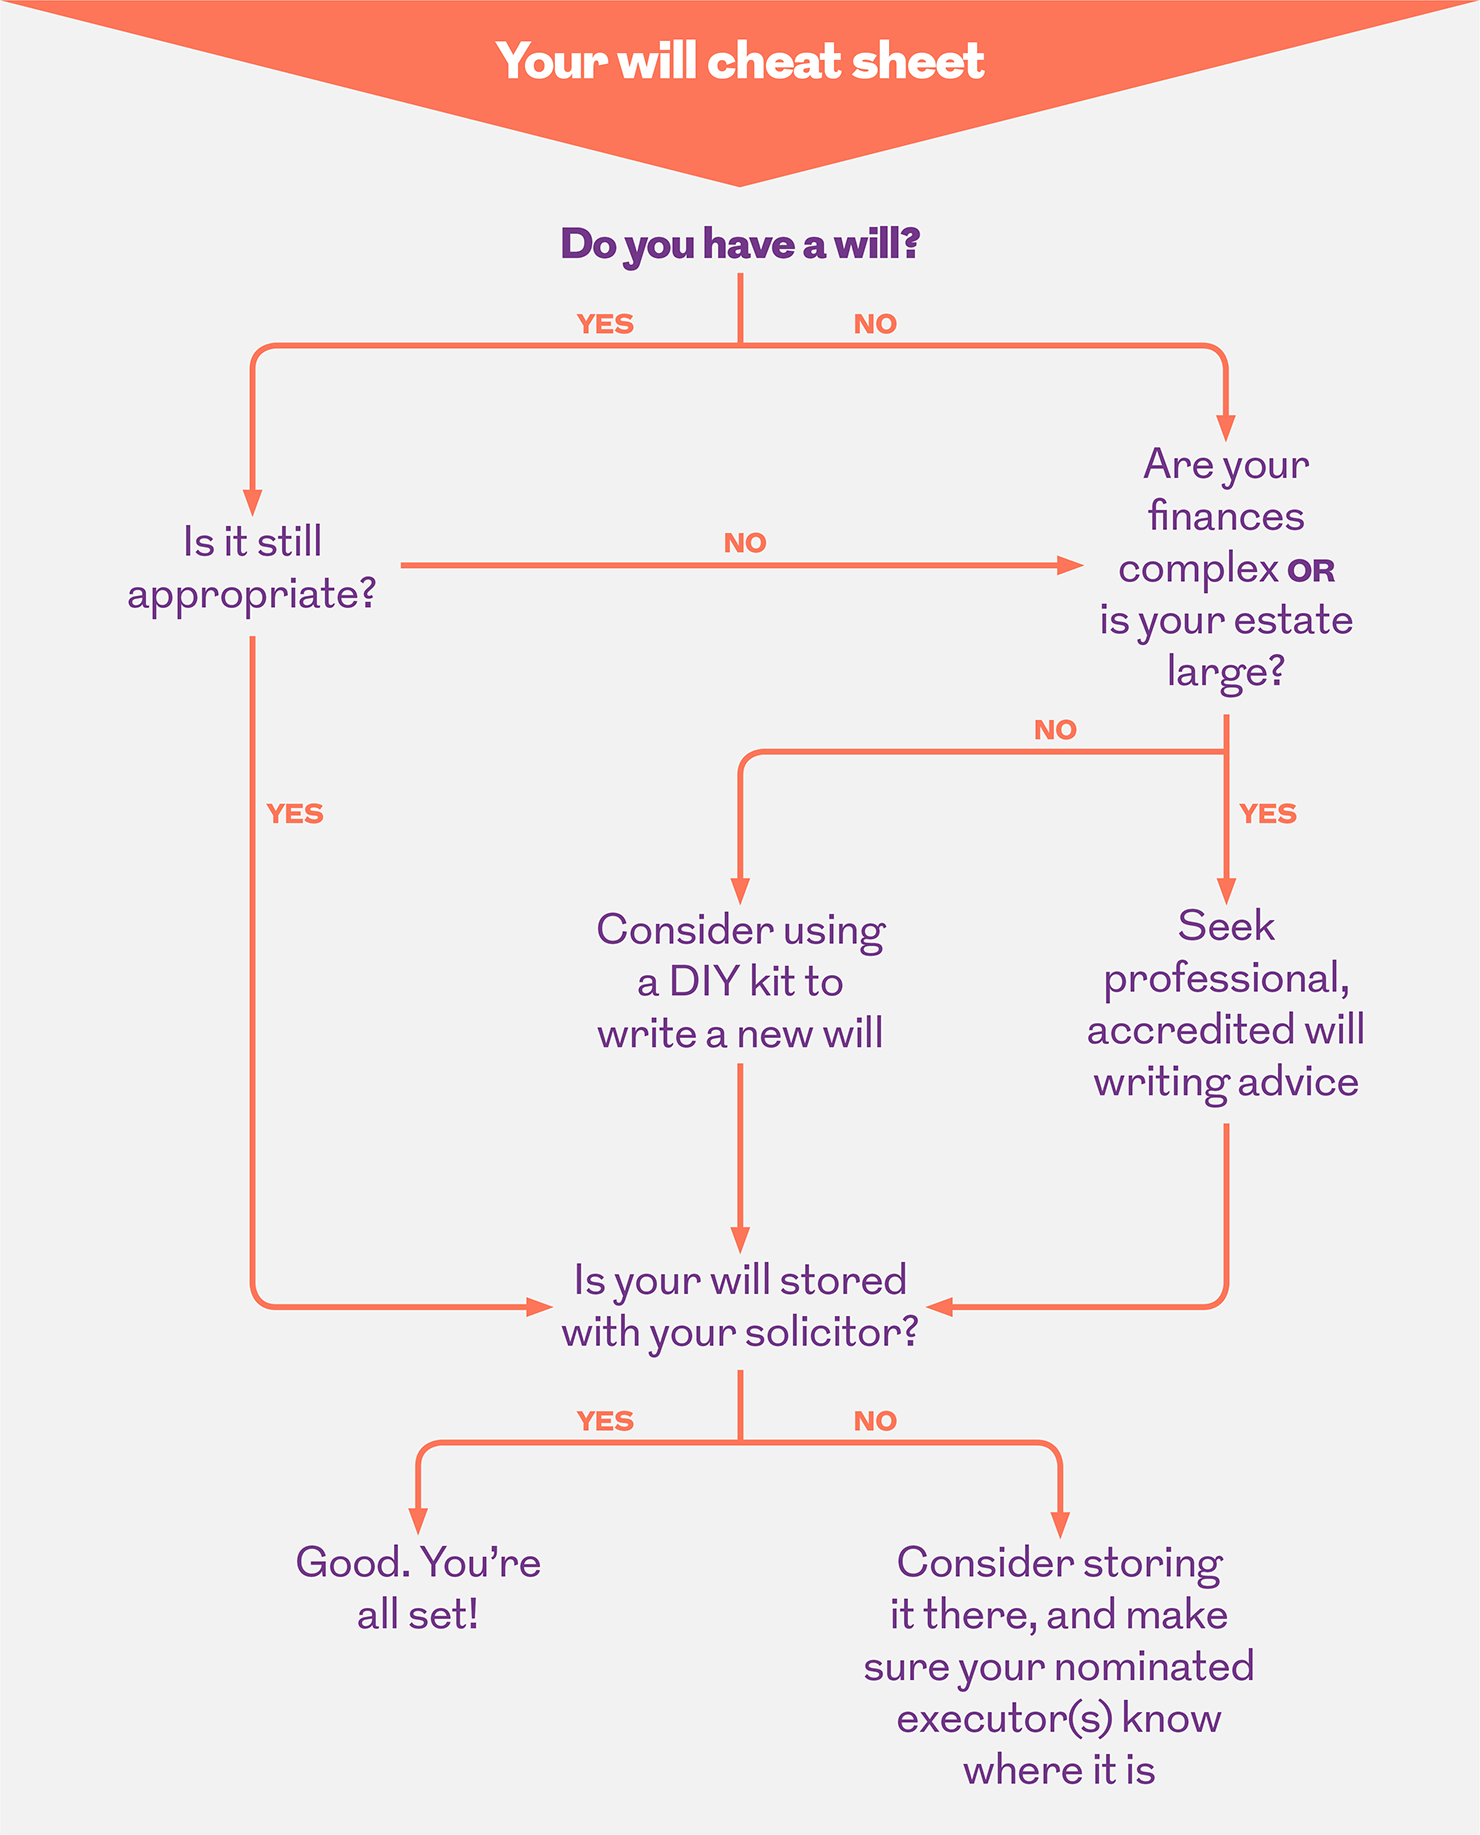 your will cheat sheet flow chart. This image is an infographic and has alternative text available if you are using a screen reader.